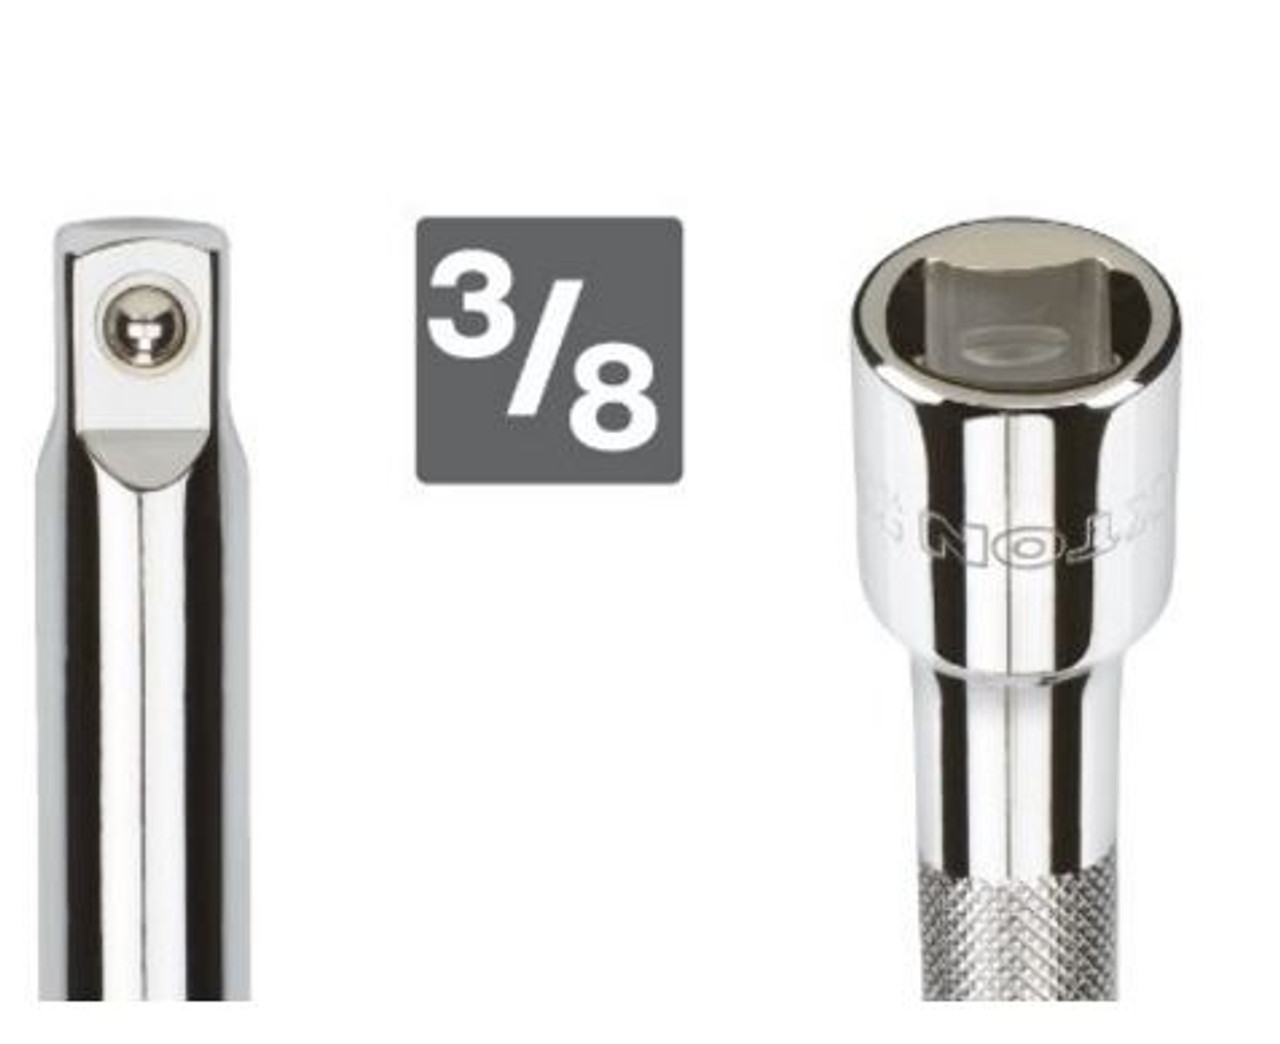 6-inch extension bar for hard-to-reach fasteners